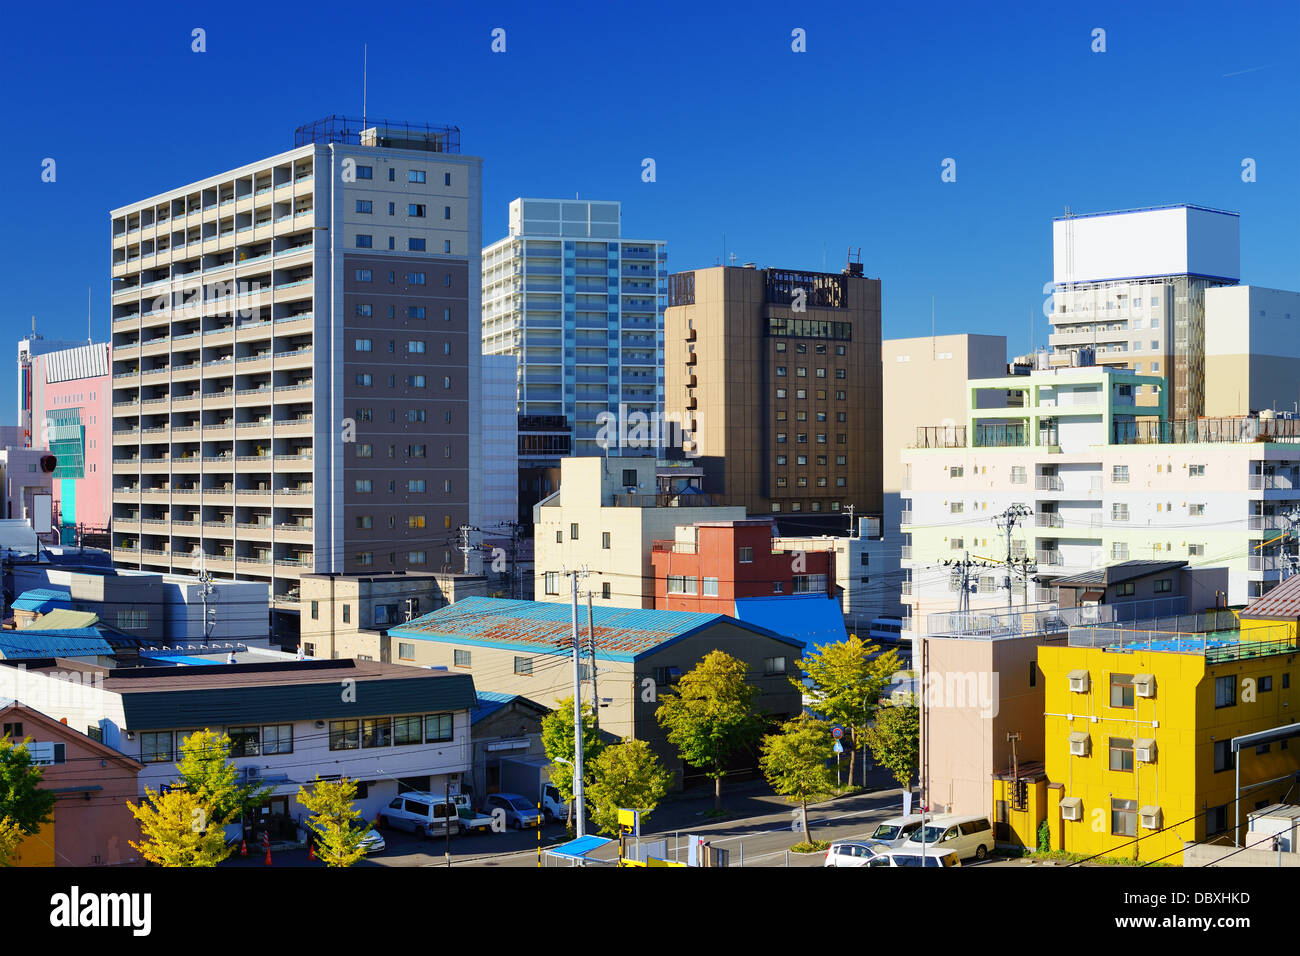 Édifices du centre-ville d'Aomori City, Japon. Photo Stock